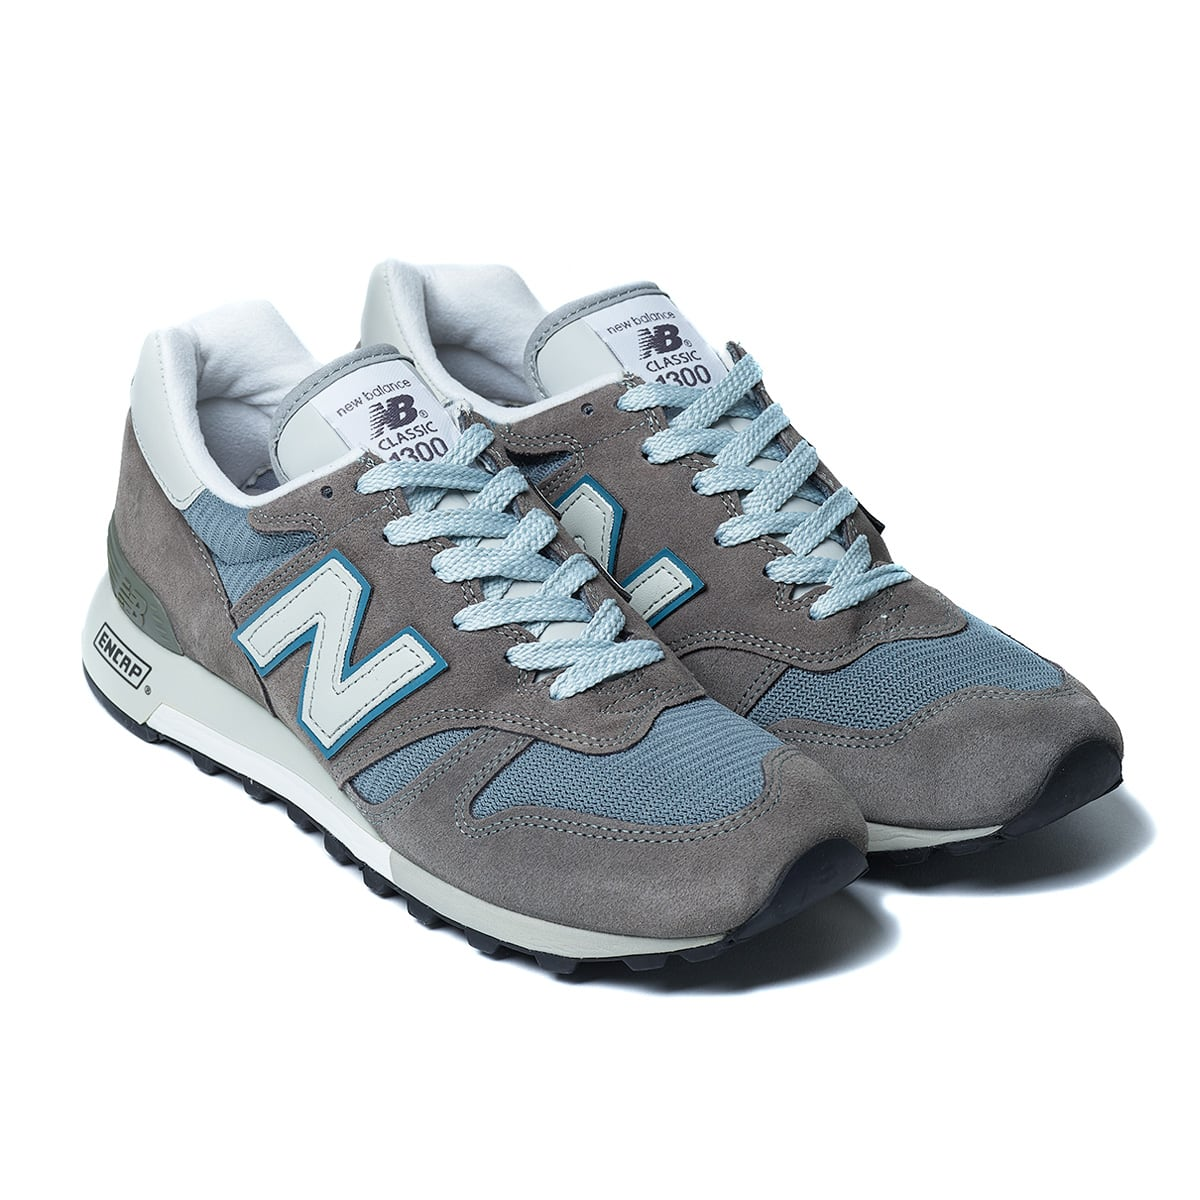 New Balance M1300CLS STEEL BLUE 20SS-I_photo_large